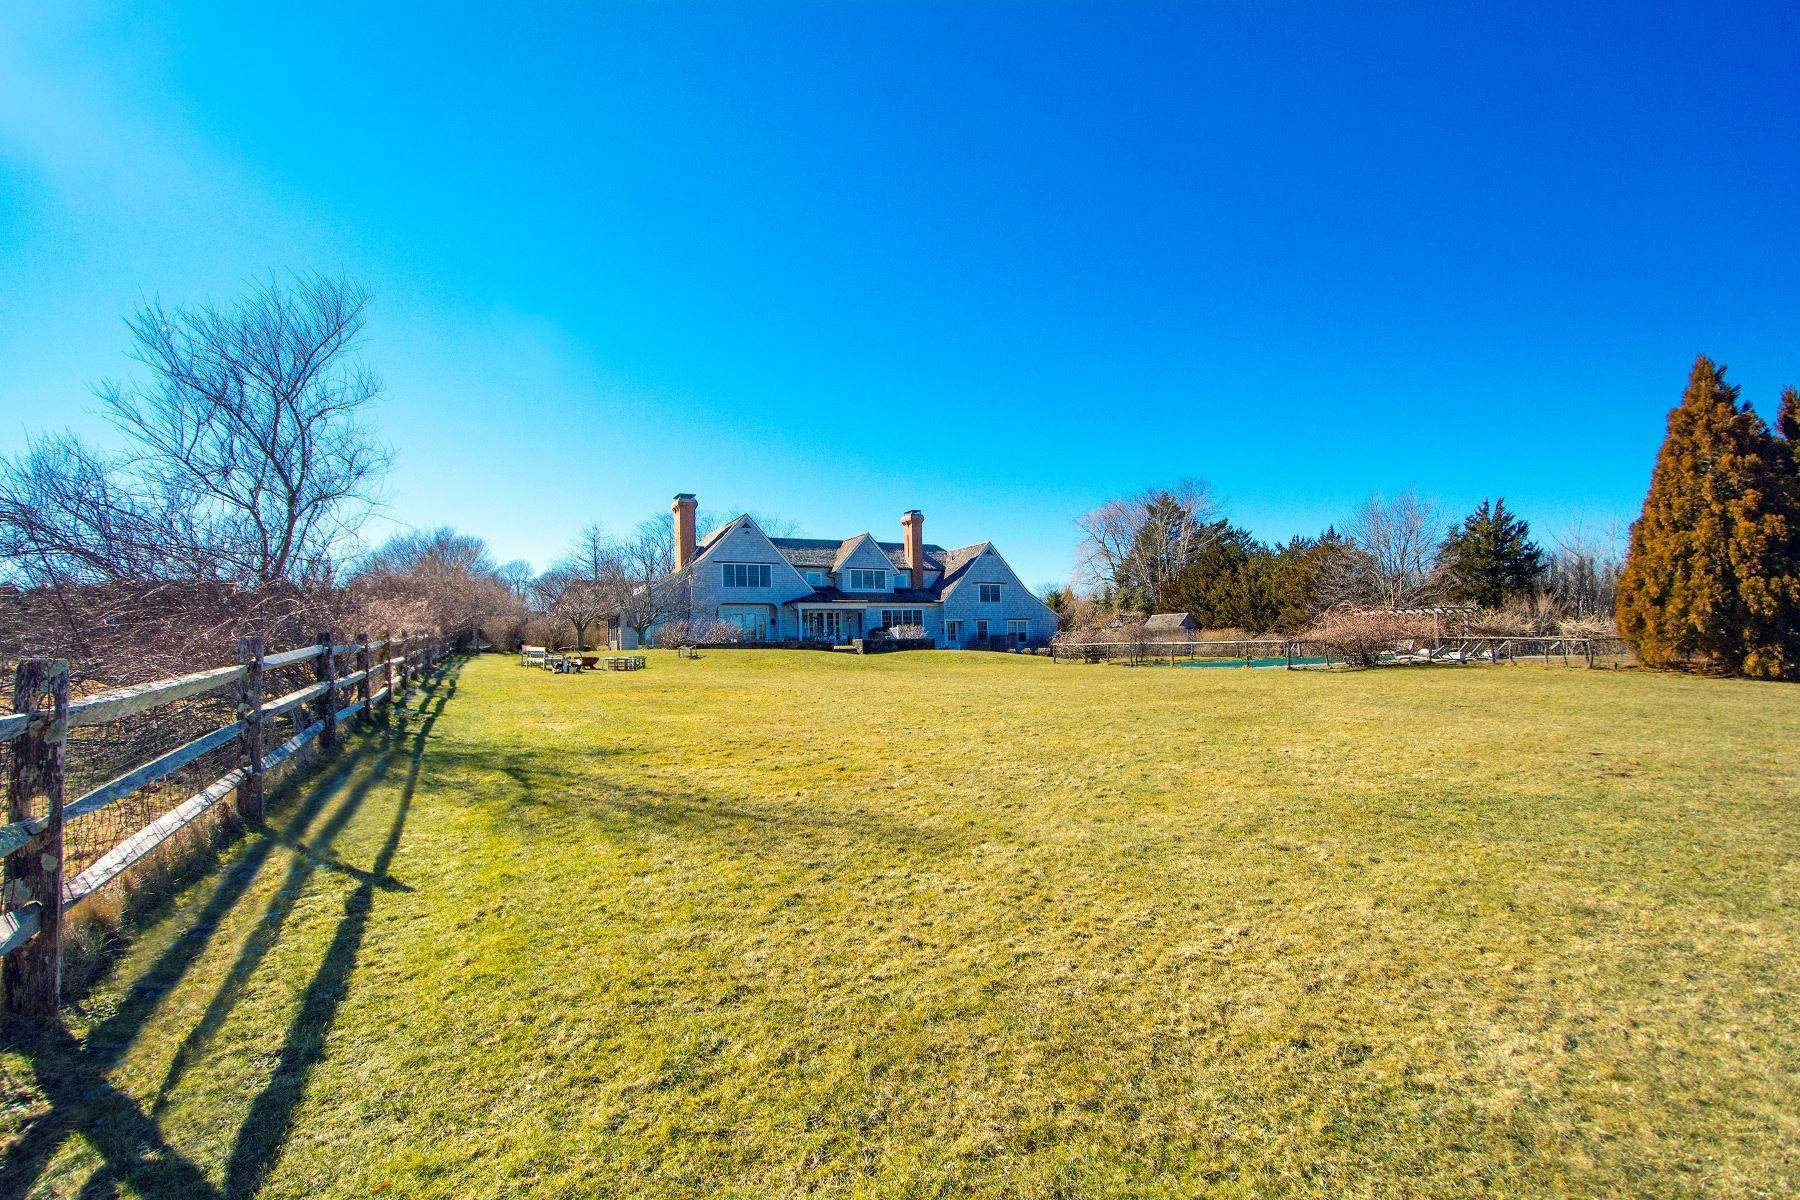 Single Family Homes for Sale at Wainscott South Close to Ocean 45 Town Line Road Wainscott, New York 11975 United States